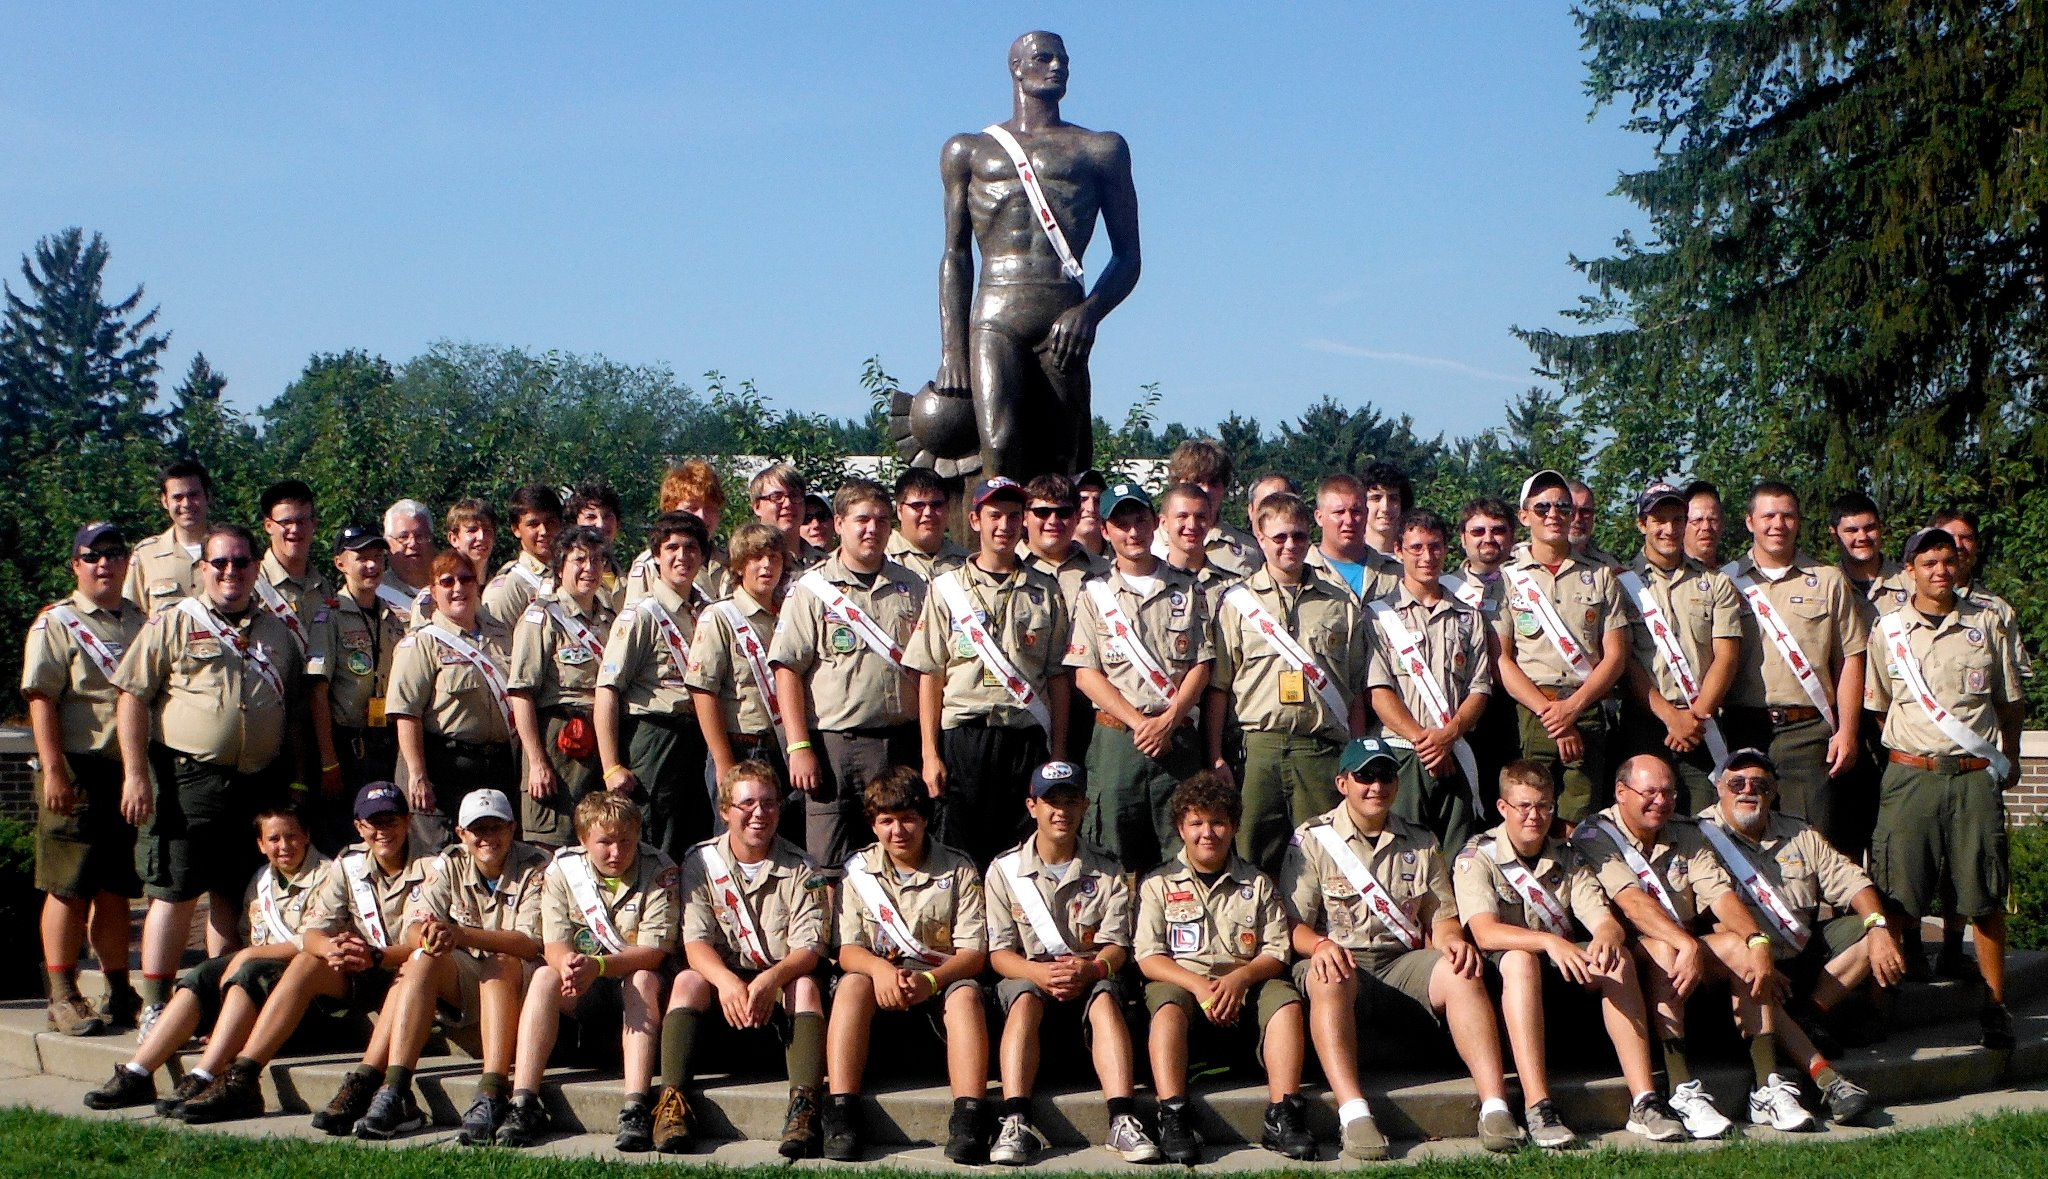 What You Missed at NOAC 2012